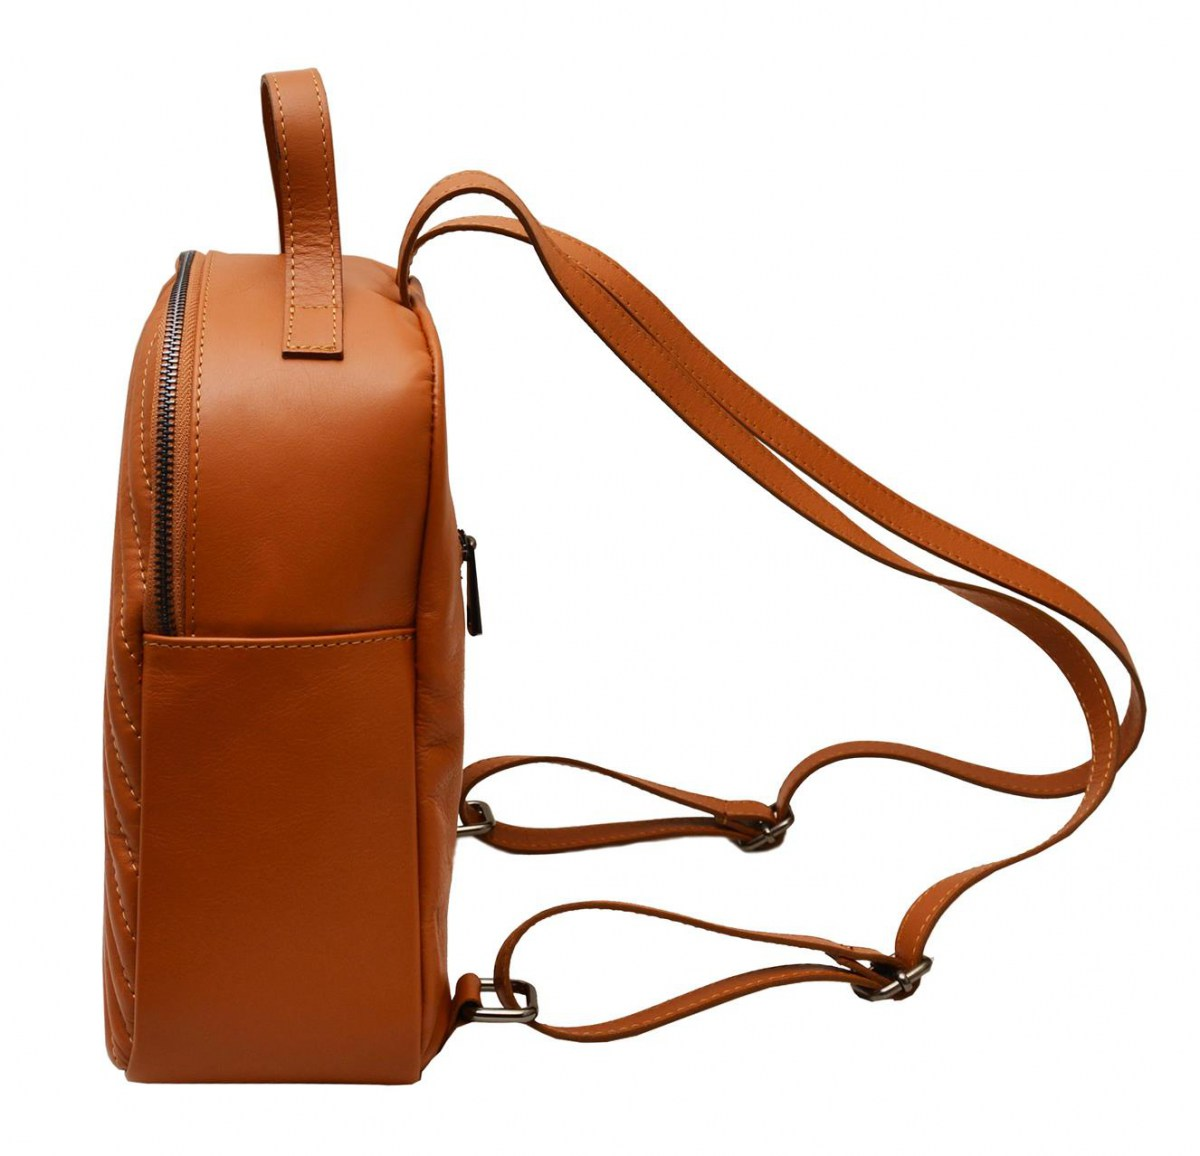 30-BAG-128 (COGNAC) 2